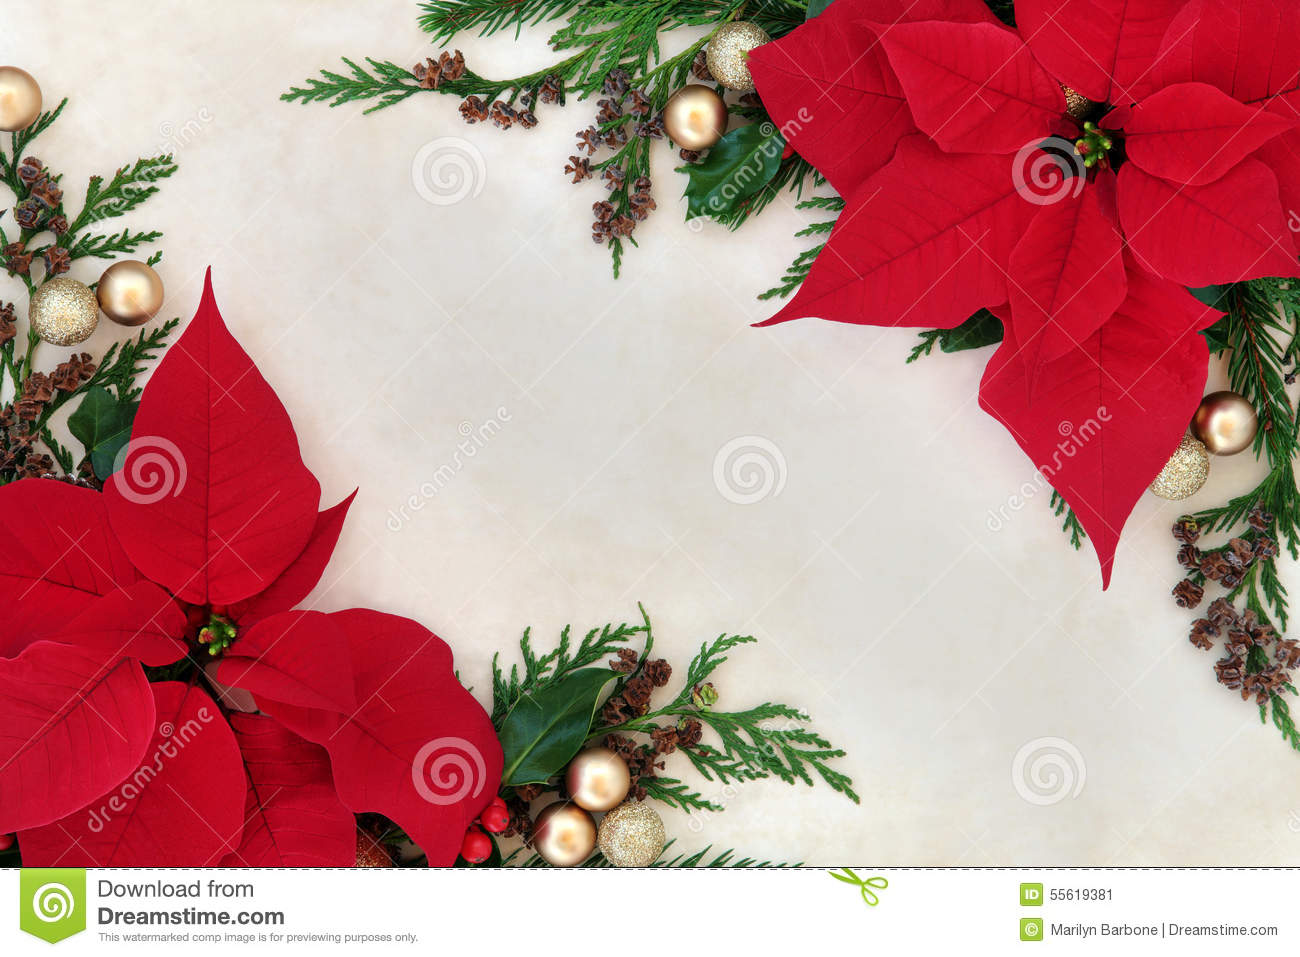 Isolated Red Poinsettia Flowers Corner Elements Isolated On White Vector Id S A also Poinsettia Border moreover Artistic Blue Christmas Tree X as well Poinsettia Flower Border Christmas Thanksgiving Background Parchment Paper together with Christmas Beautiful Garland Poinsettia Bell O Wooden Background Snow. on pointsettia border